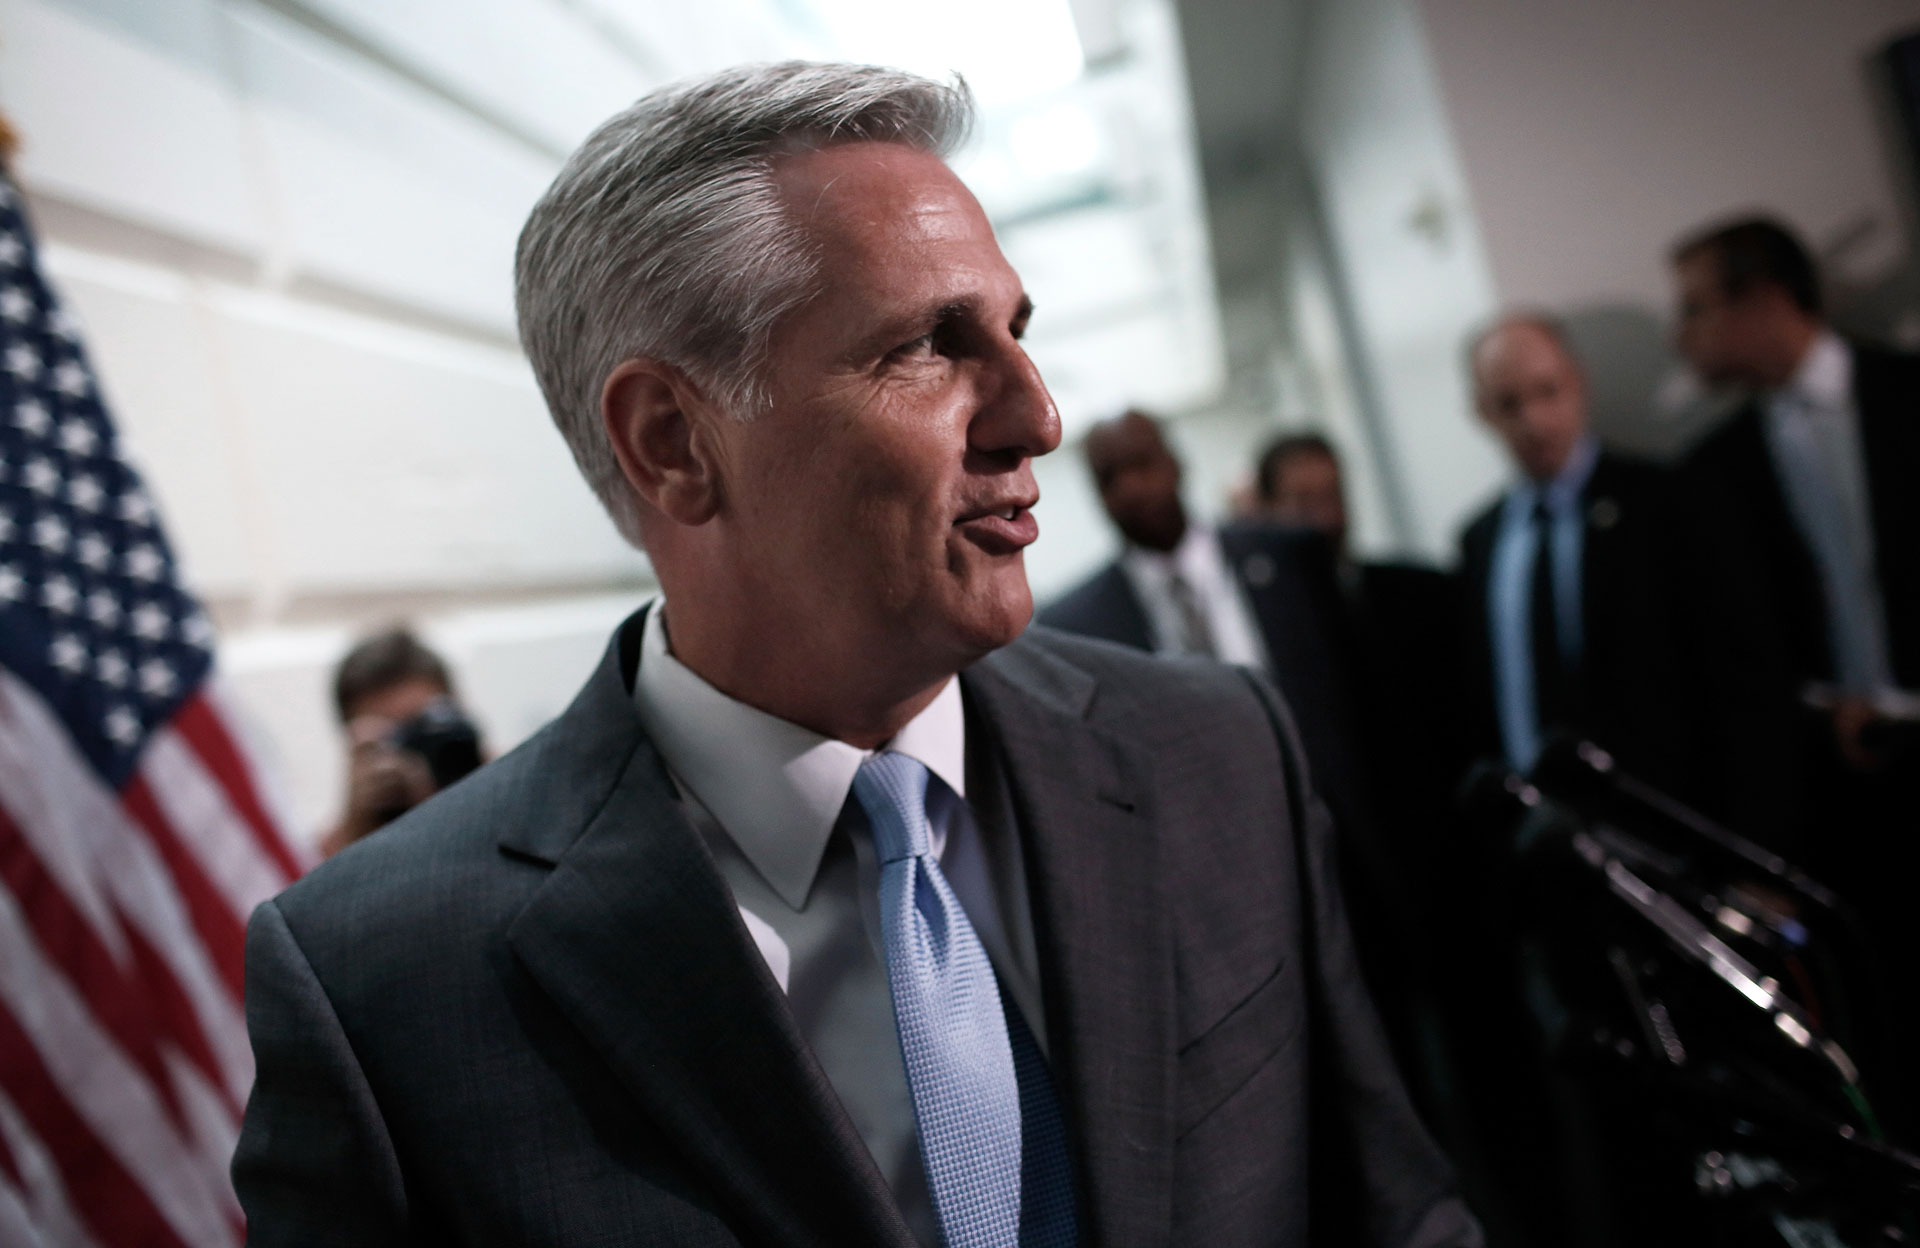 Rep. Kevin McCarthy leaves a meeting at the Capitol on June 18, 2014.